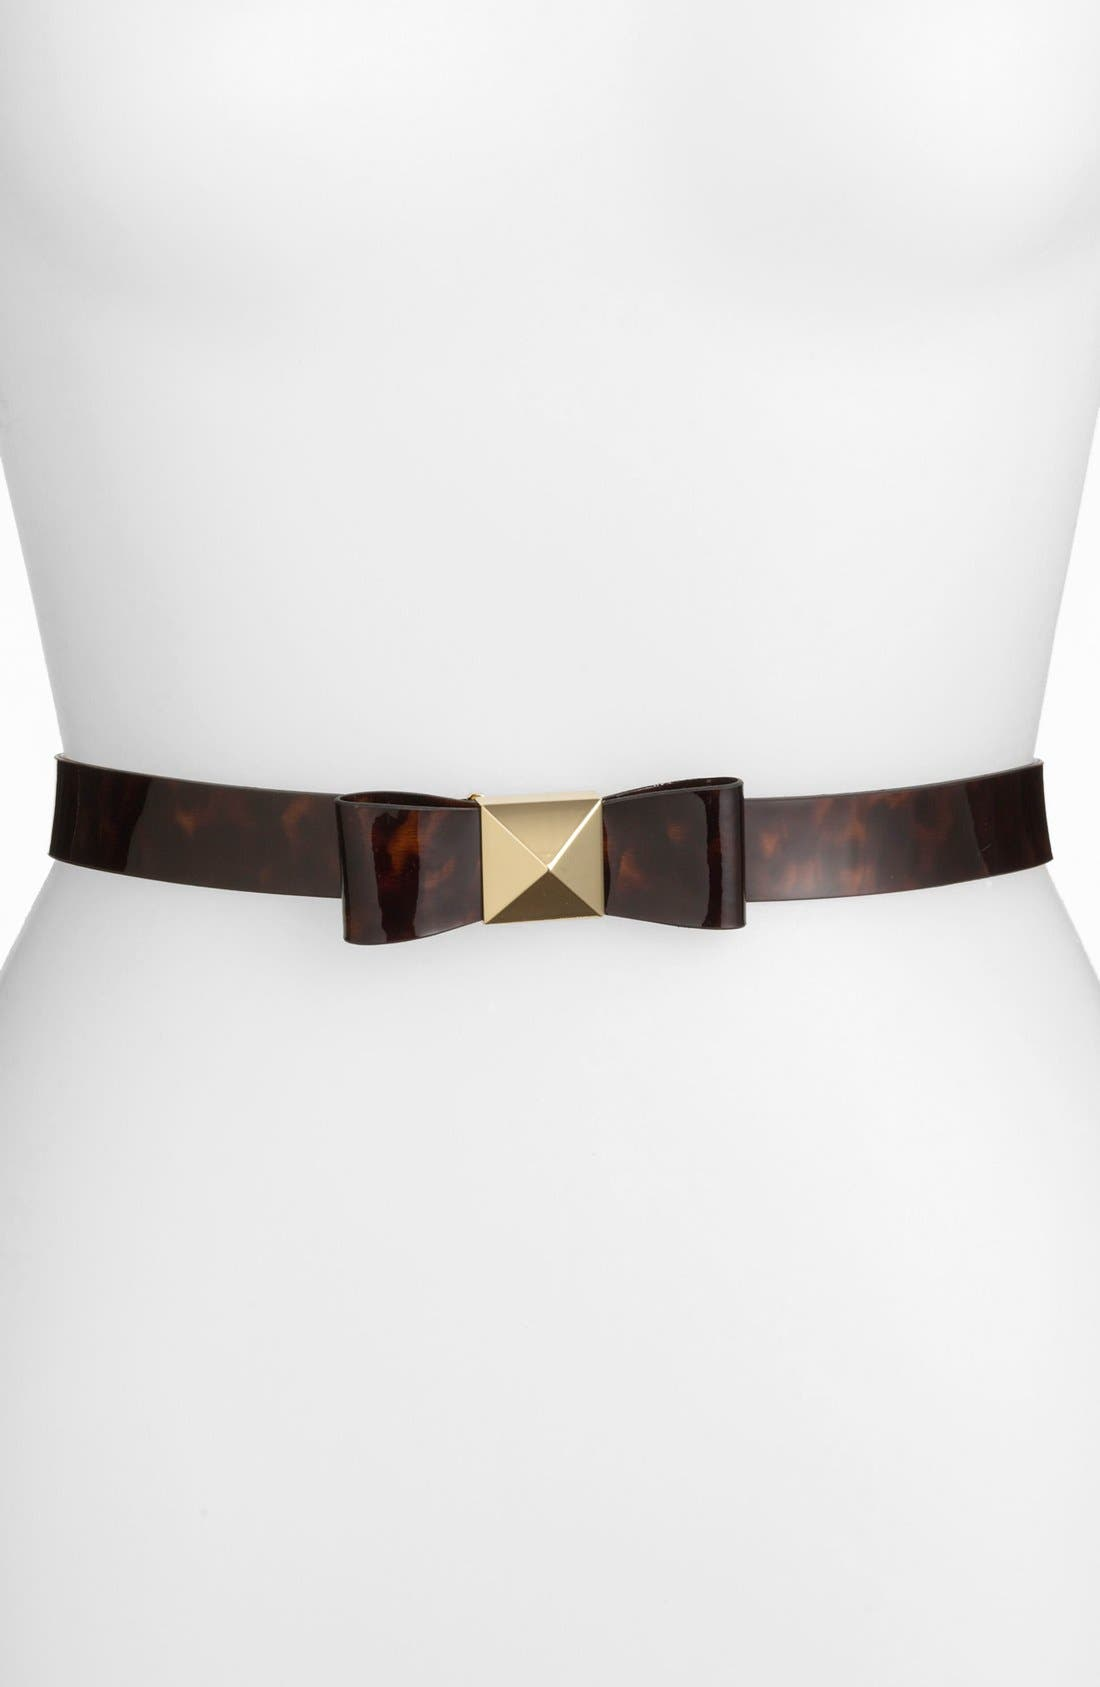 Alternate Image 1 Selected - kate spade new york 'pyramid bow' leather belt